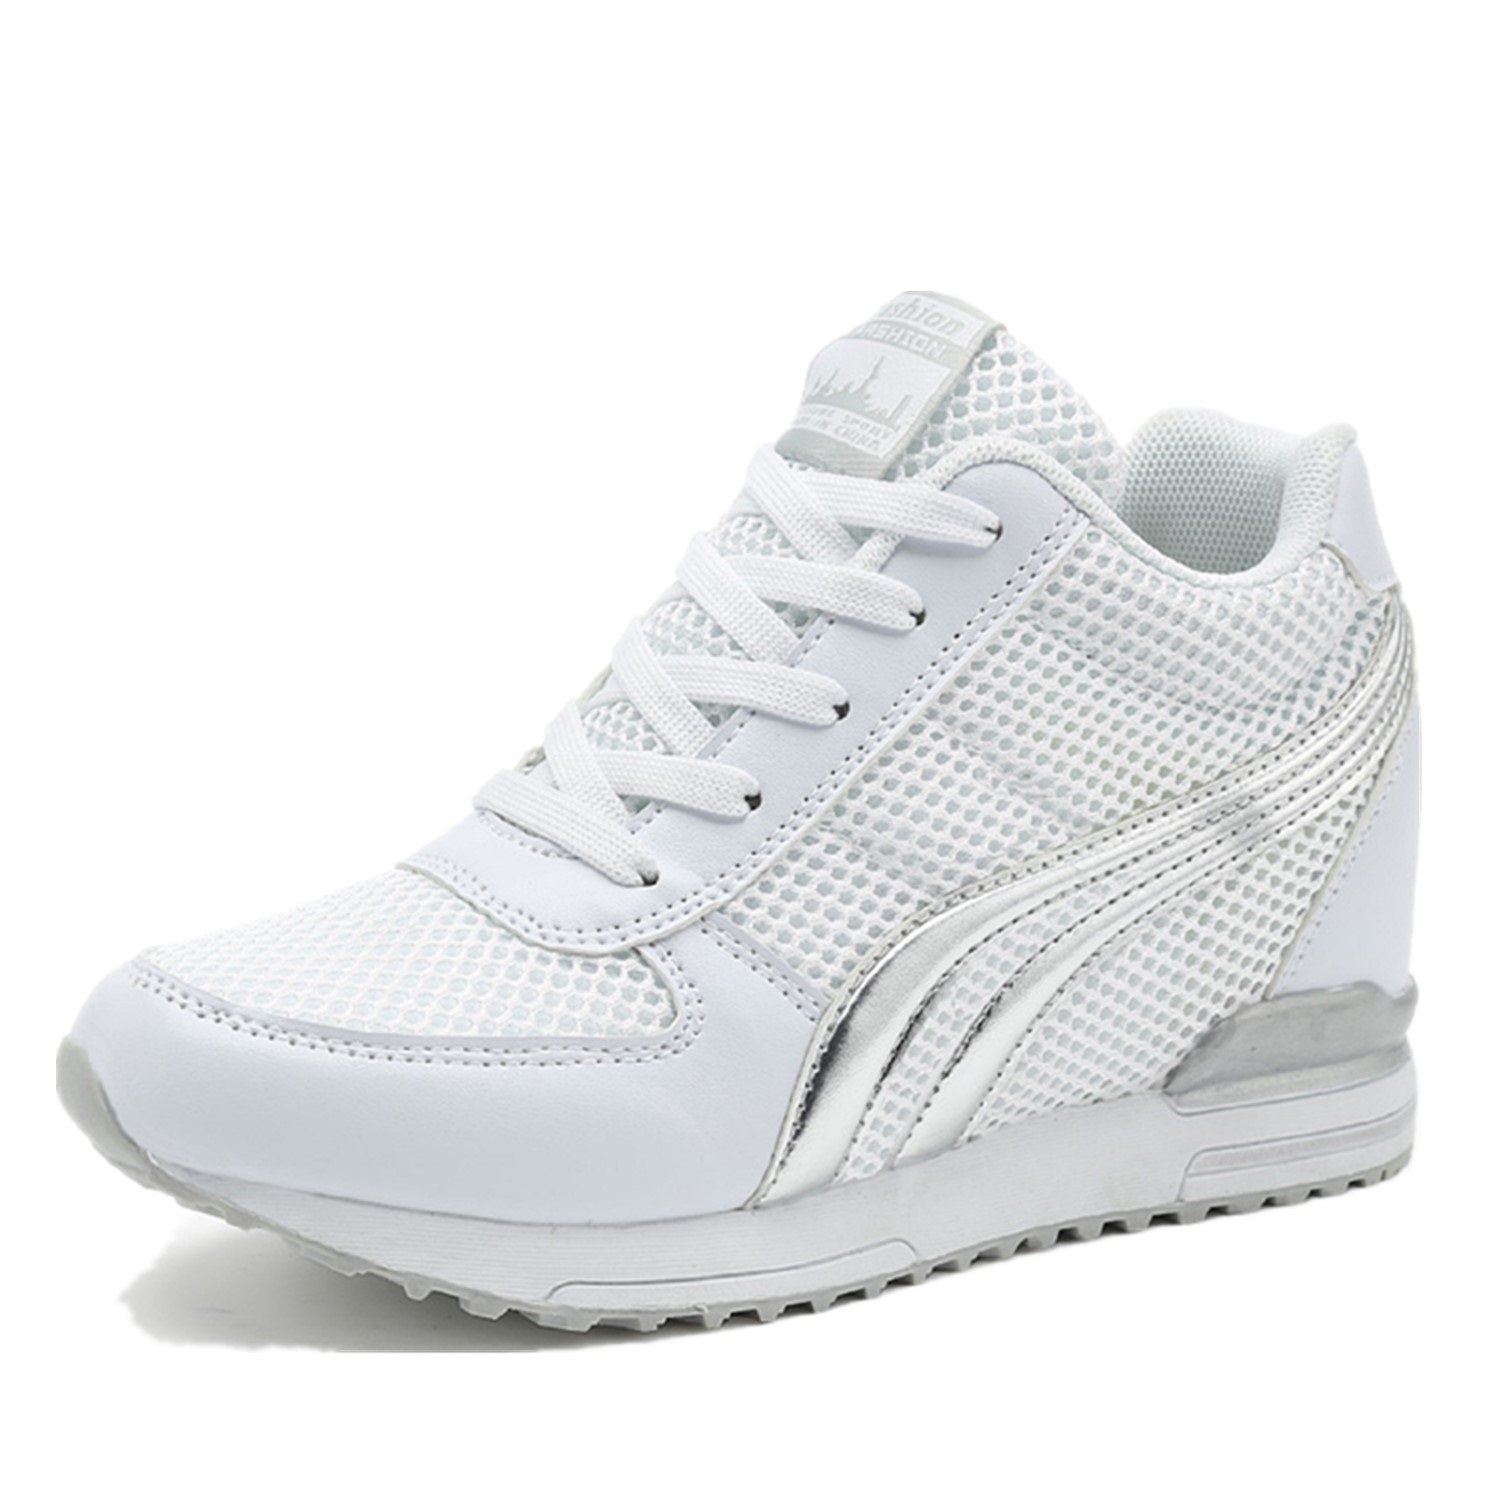 TQGOLD Womens Hidden Wedges Shoes High Heeled Lightweight Mesh Sneakers Casual Walking Shoes Tennis Chic(Size 38, White)